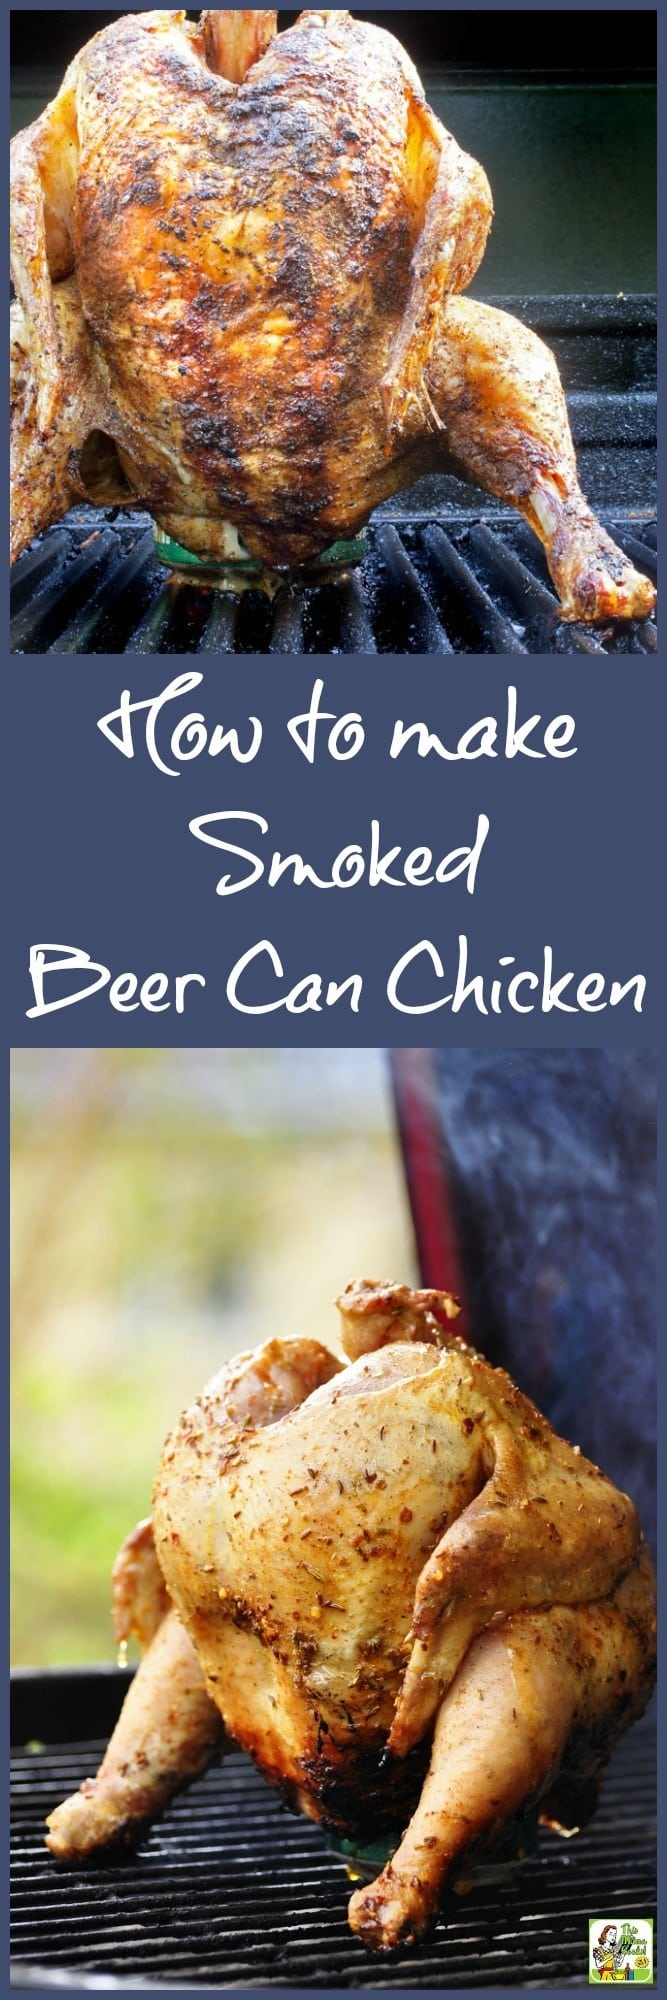 Making smoked beer can chicken is easier than you think if you use bottled marinade or salad dressing and a store-bought barbeque rub. Cook the beer can chicken in an electric or gas smoker. Or you can smoke beer can chicken in a grill type smoker like a Green Egg or Kamodo Joe. Best of all? Smoked beer can chicken tastes great and is worth the little bit of effort! #chicken #beercanchicken #smoking #grilling #smokedmeats #poultry #beercancooking #greenegg #kamodojoe